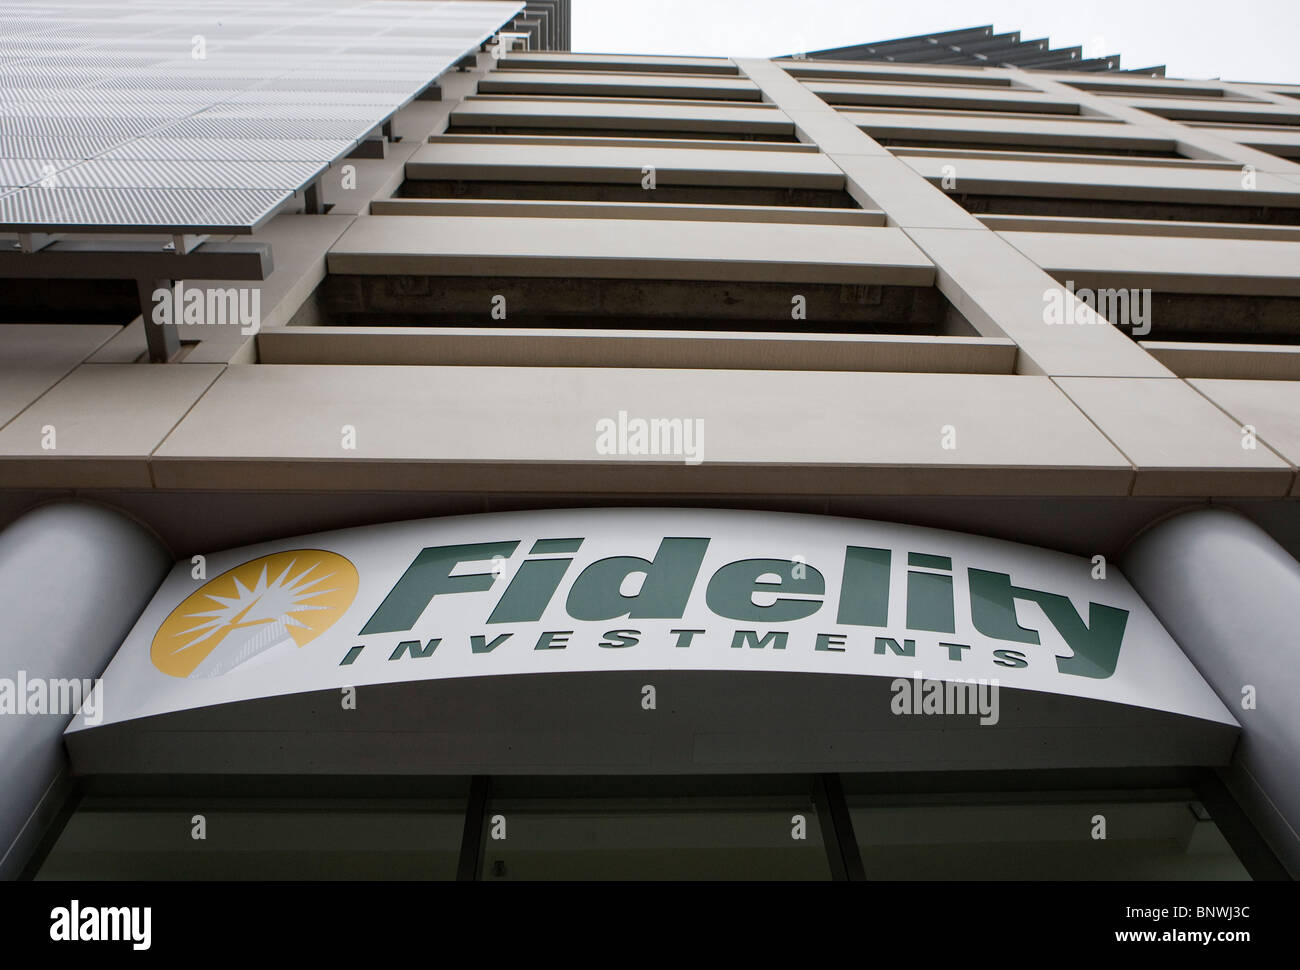 Fidelity Investments. - Stock Image